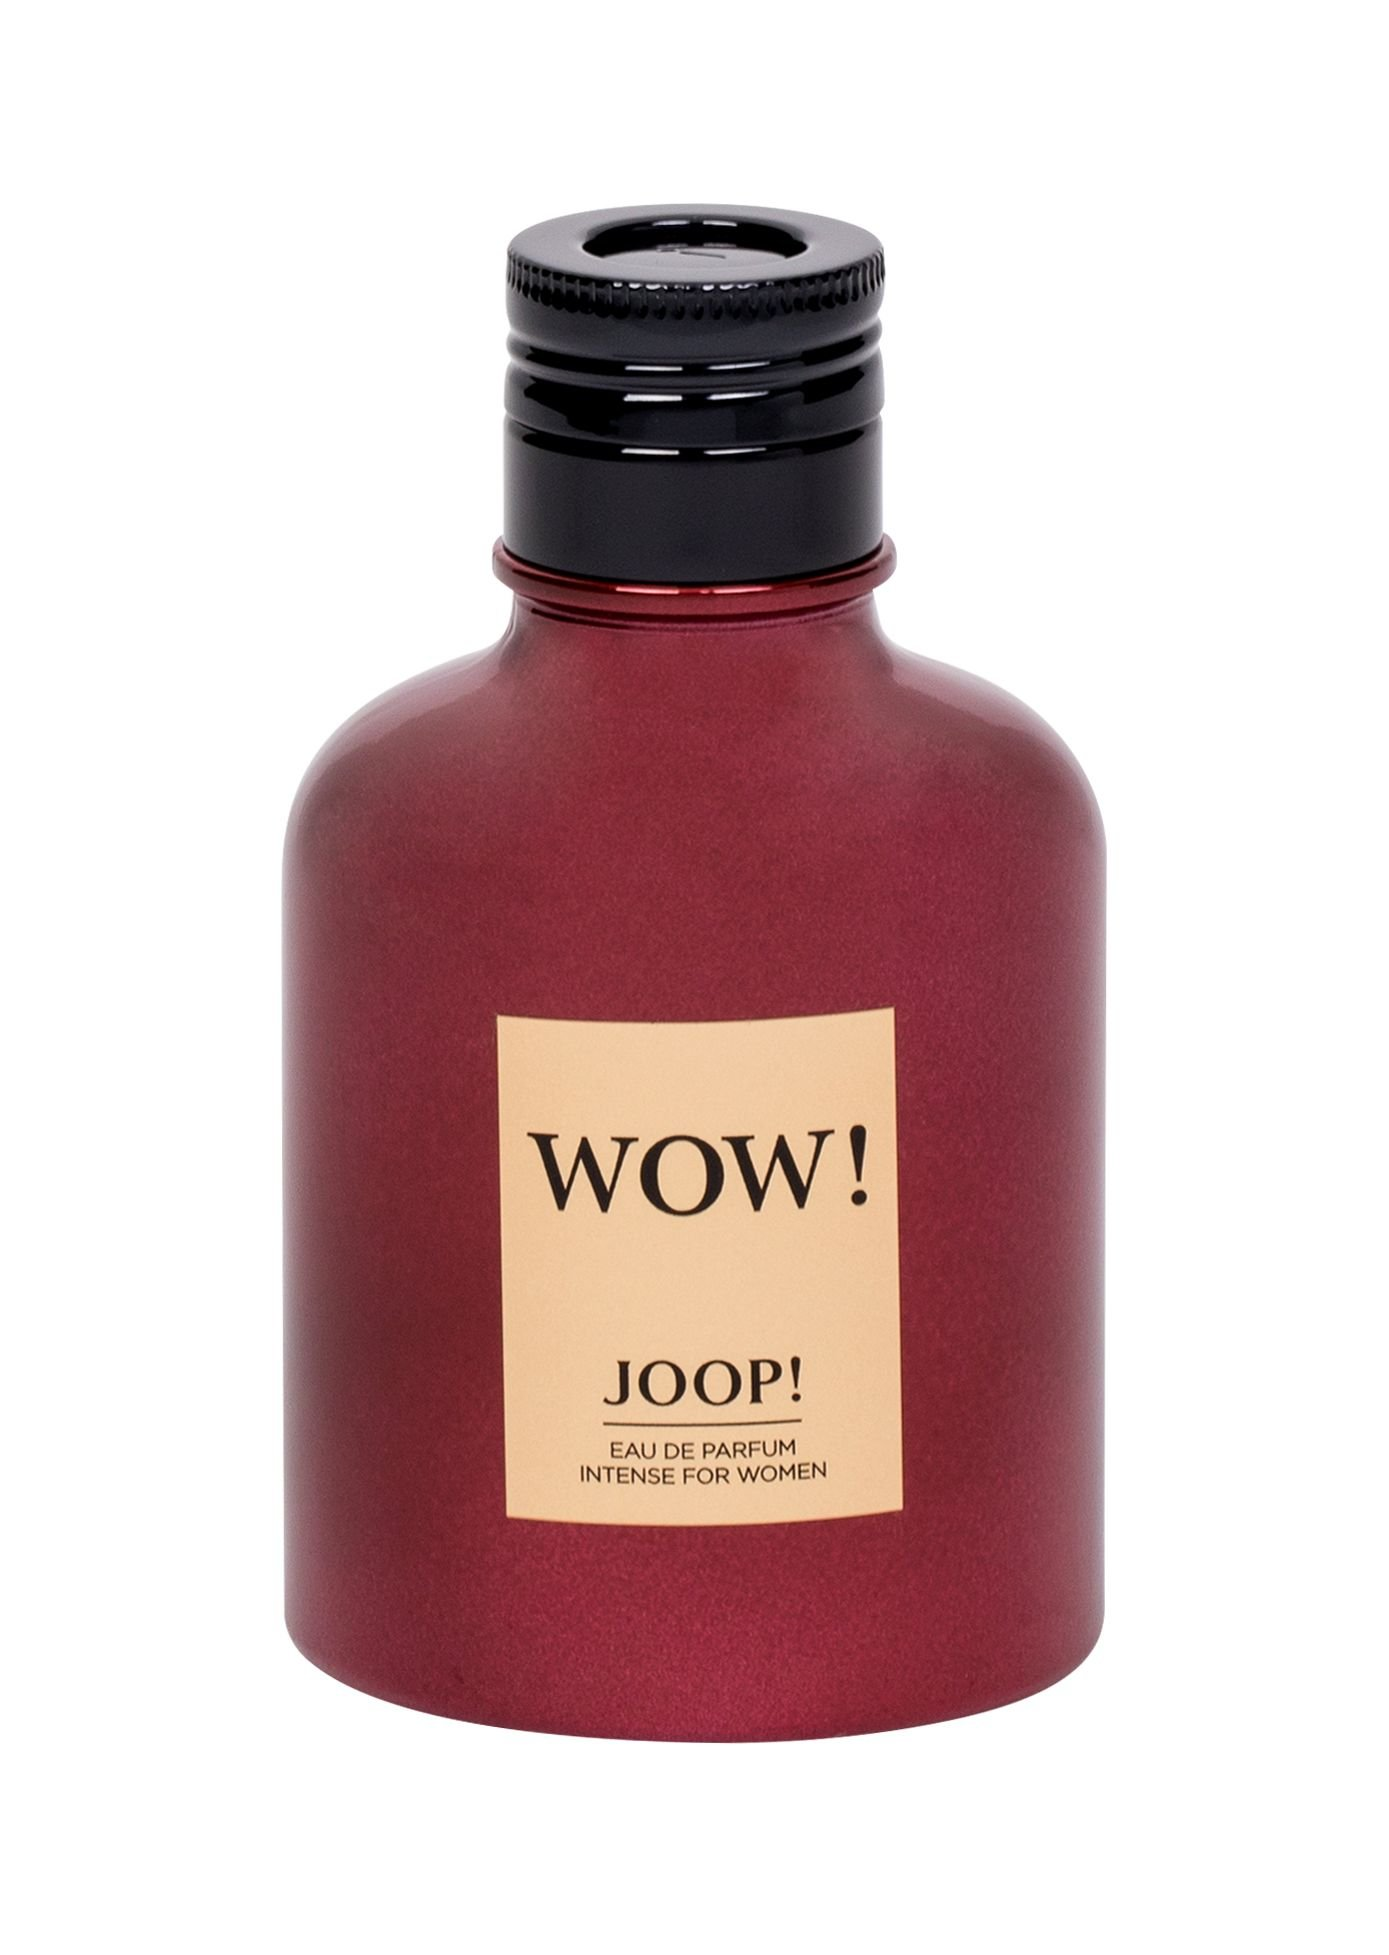 JOOP! Wow Intense, edp 60ml - For Women